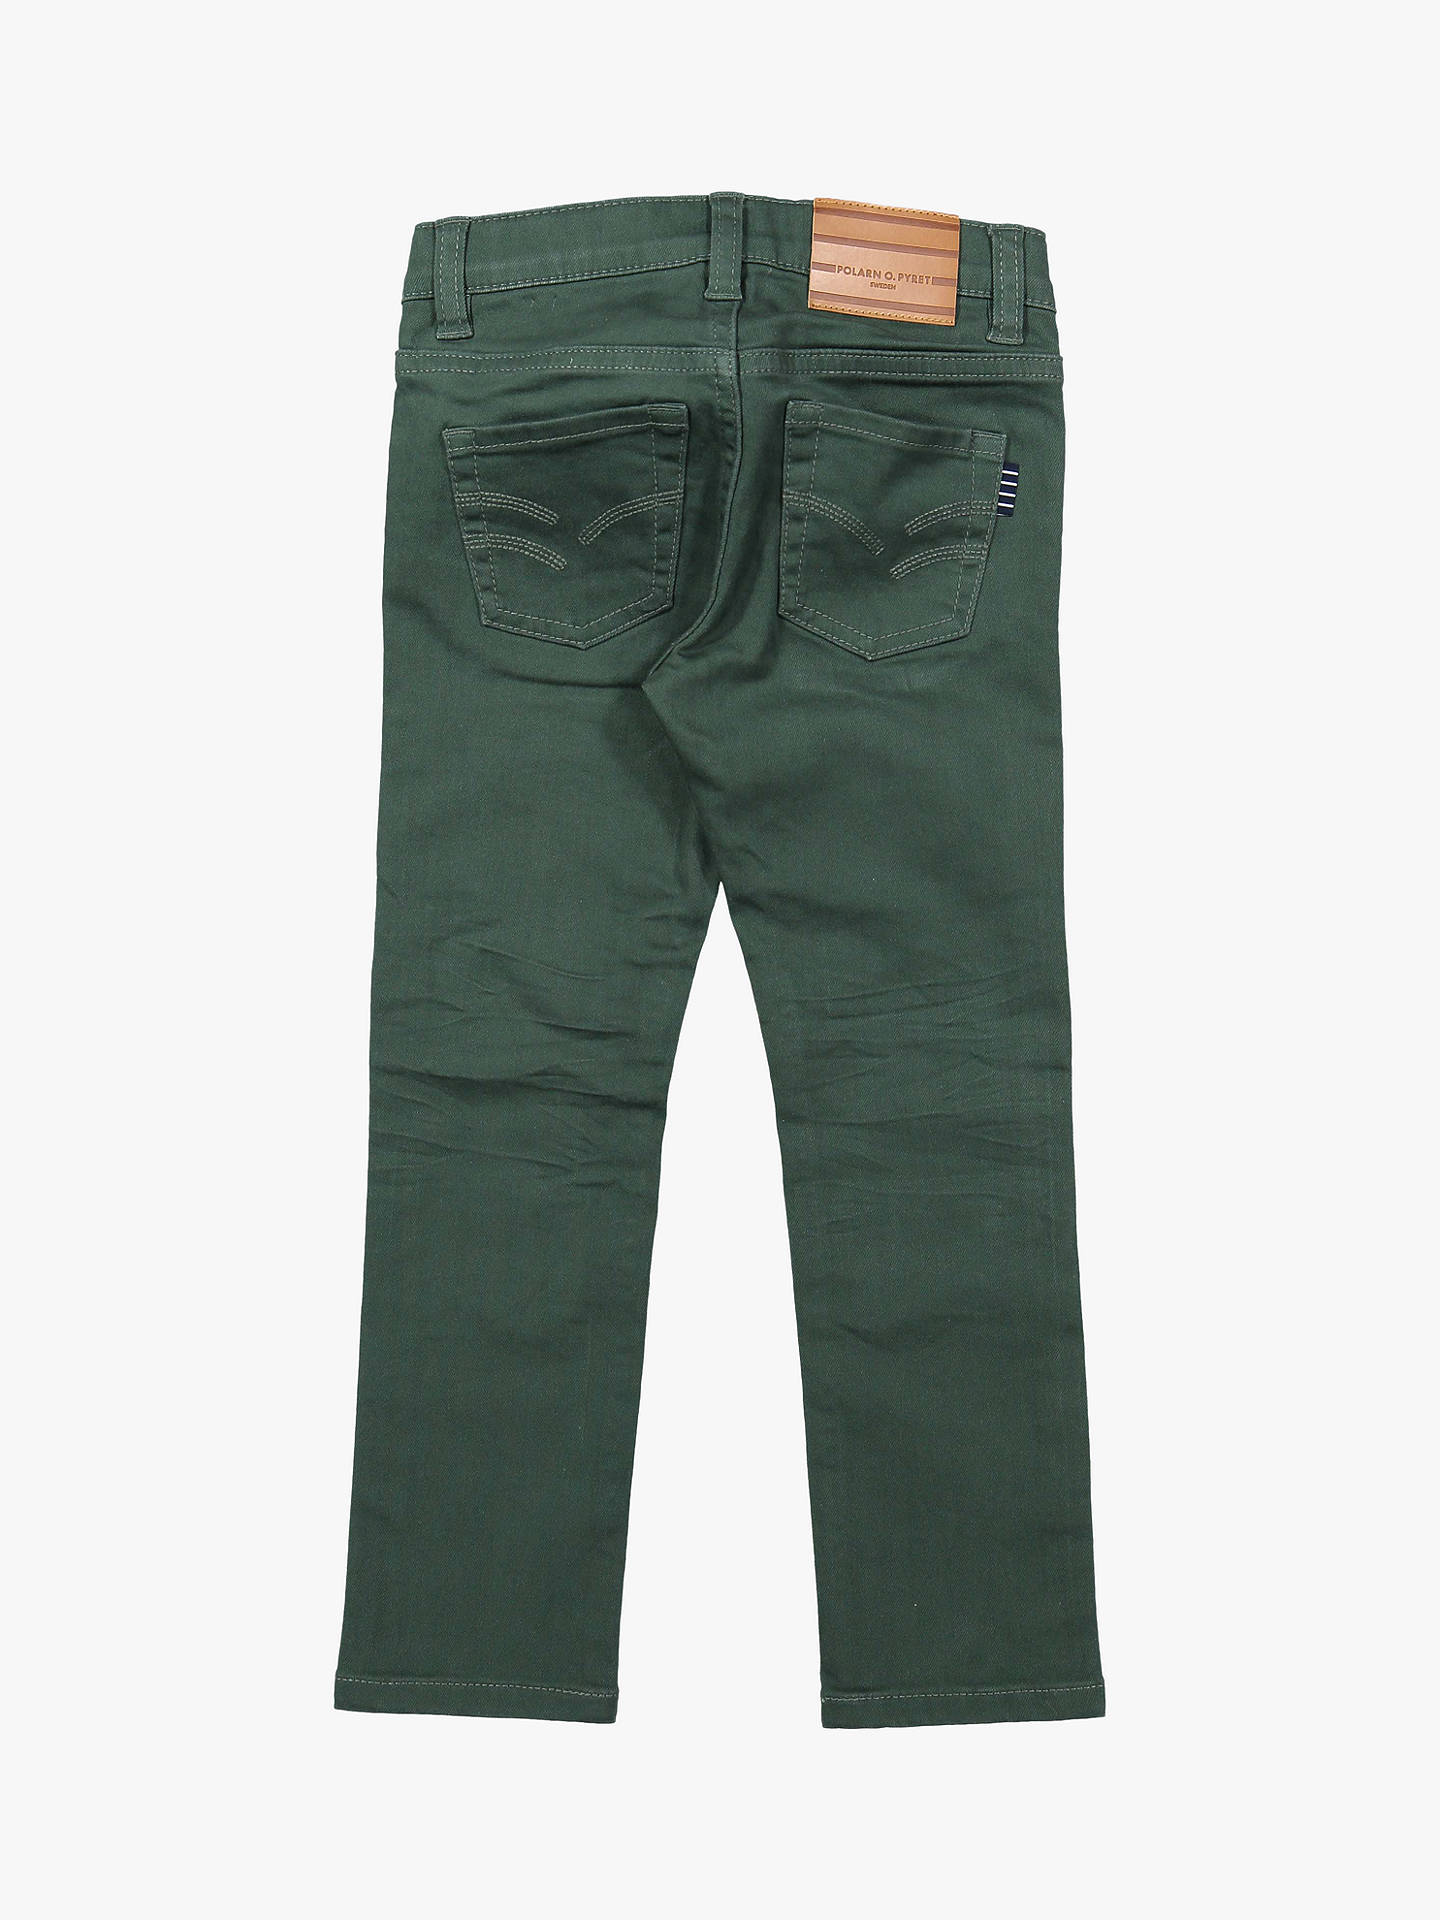 BuyPolarn O. Pyret Children's Twill Jeans, Green, 3-4 years Online at johnlewis.com